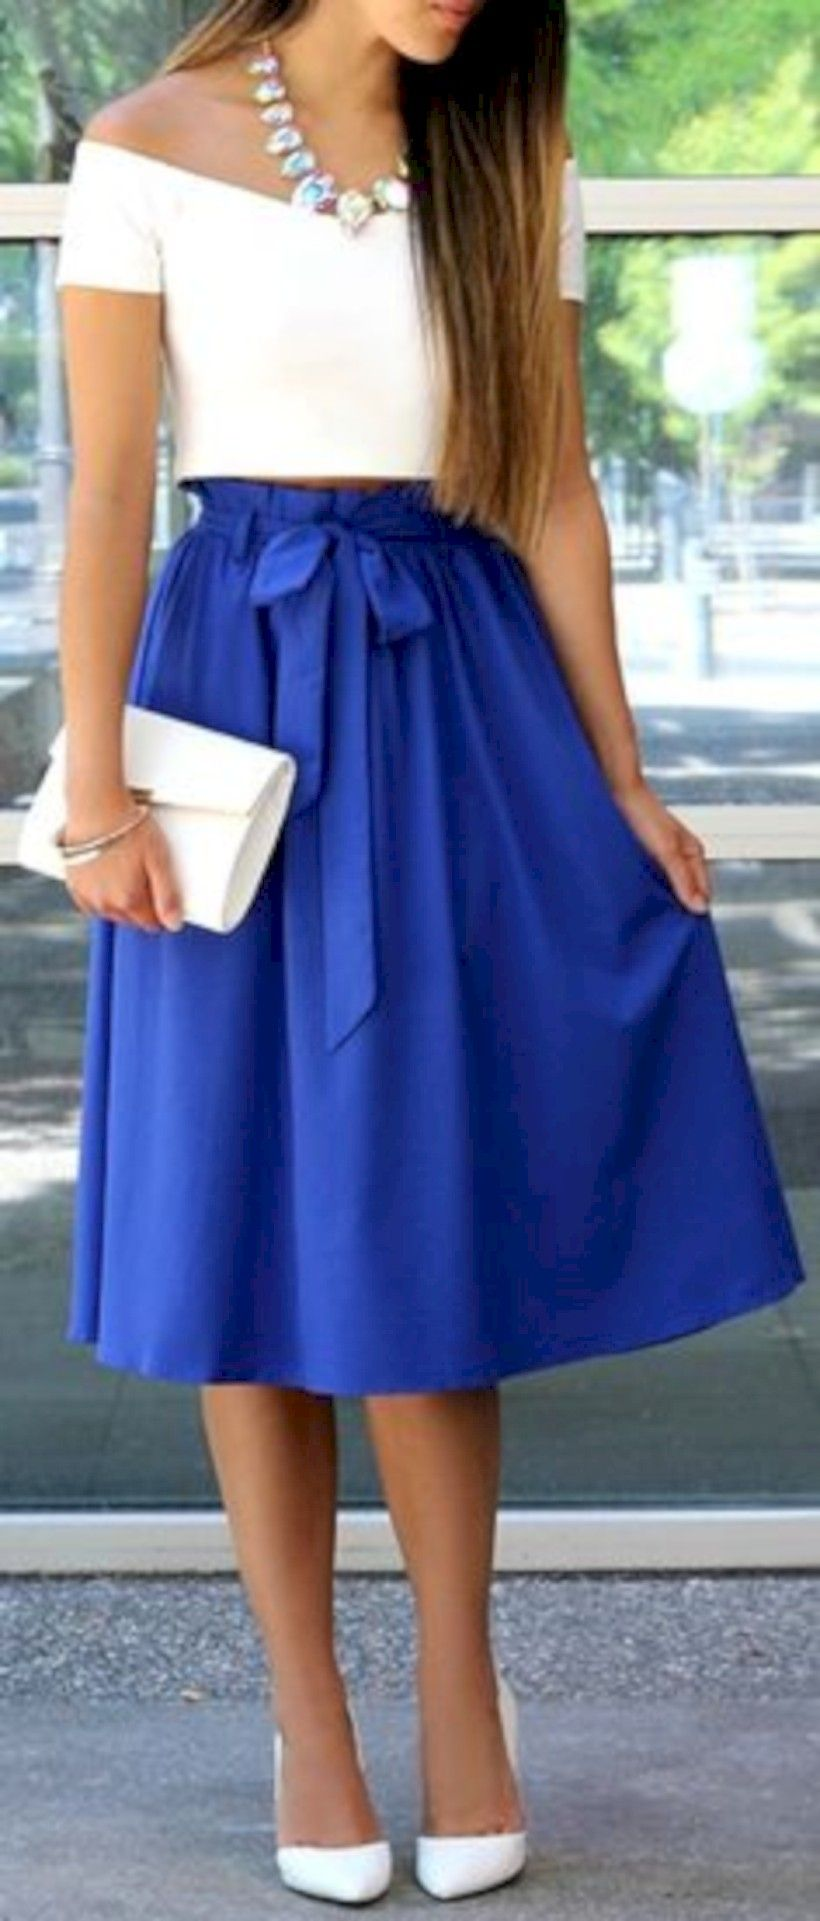 60 Formal Winter Wedding Outfits Ideas for Guest | Pinterest ...